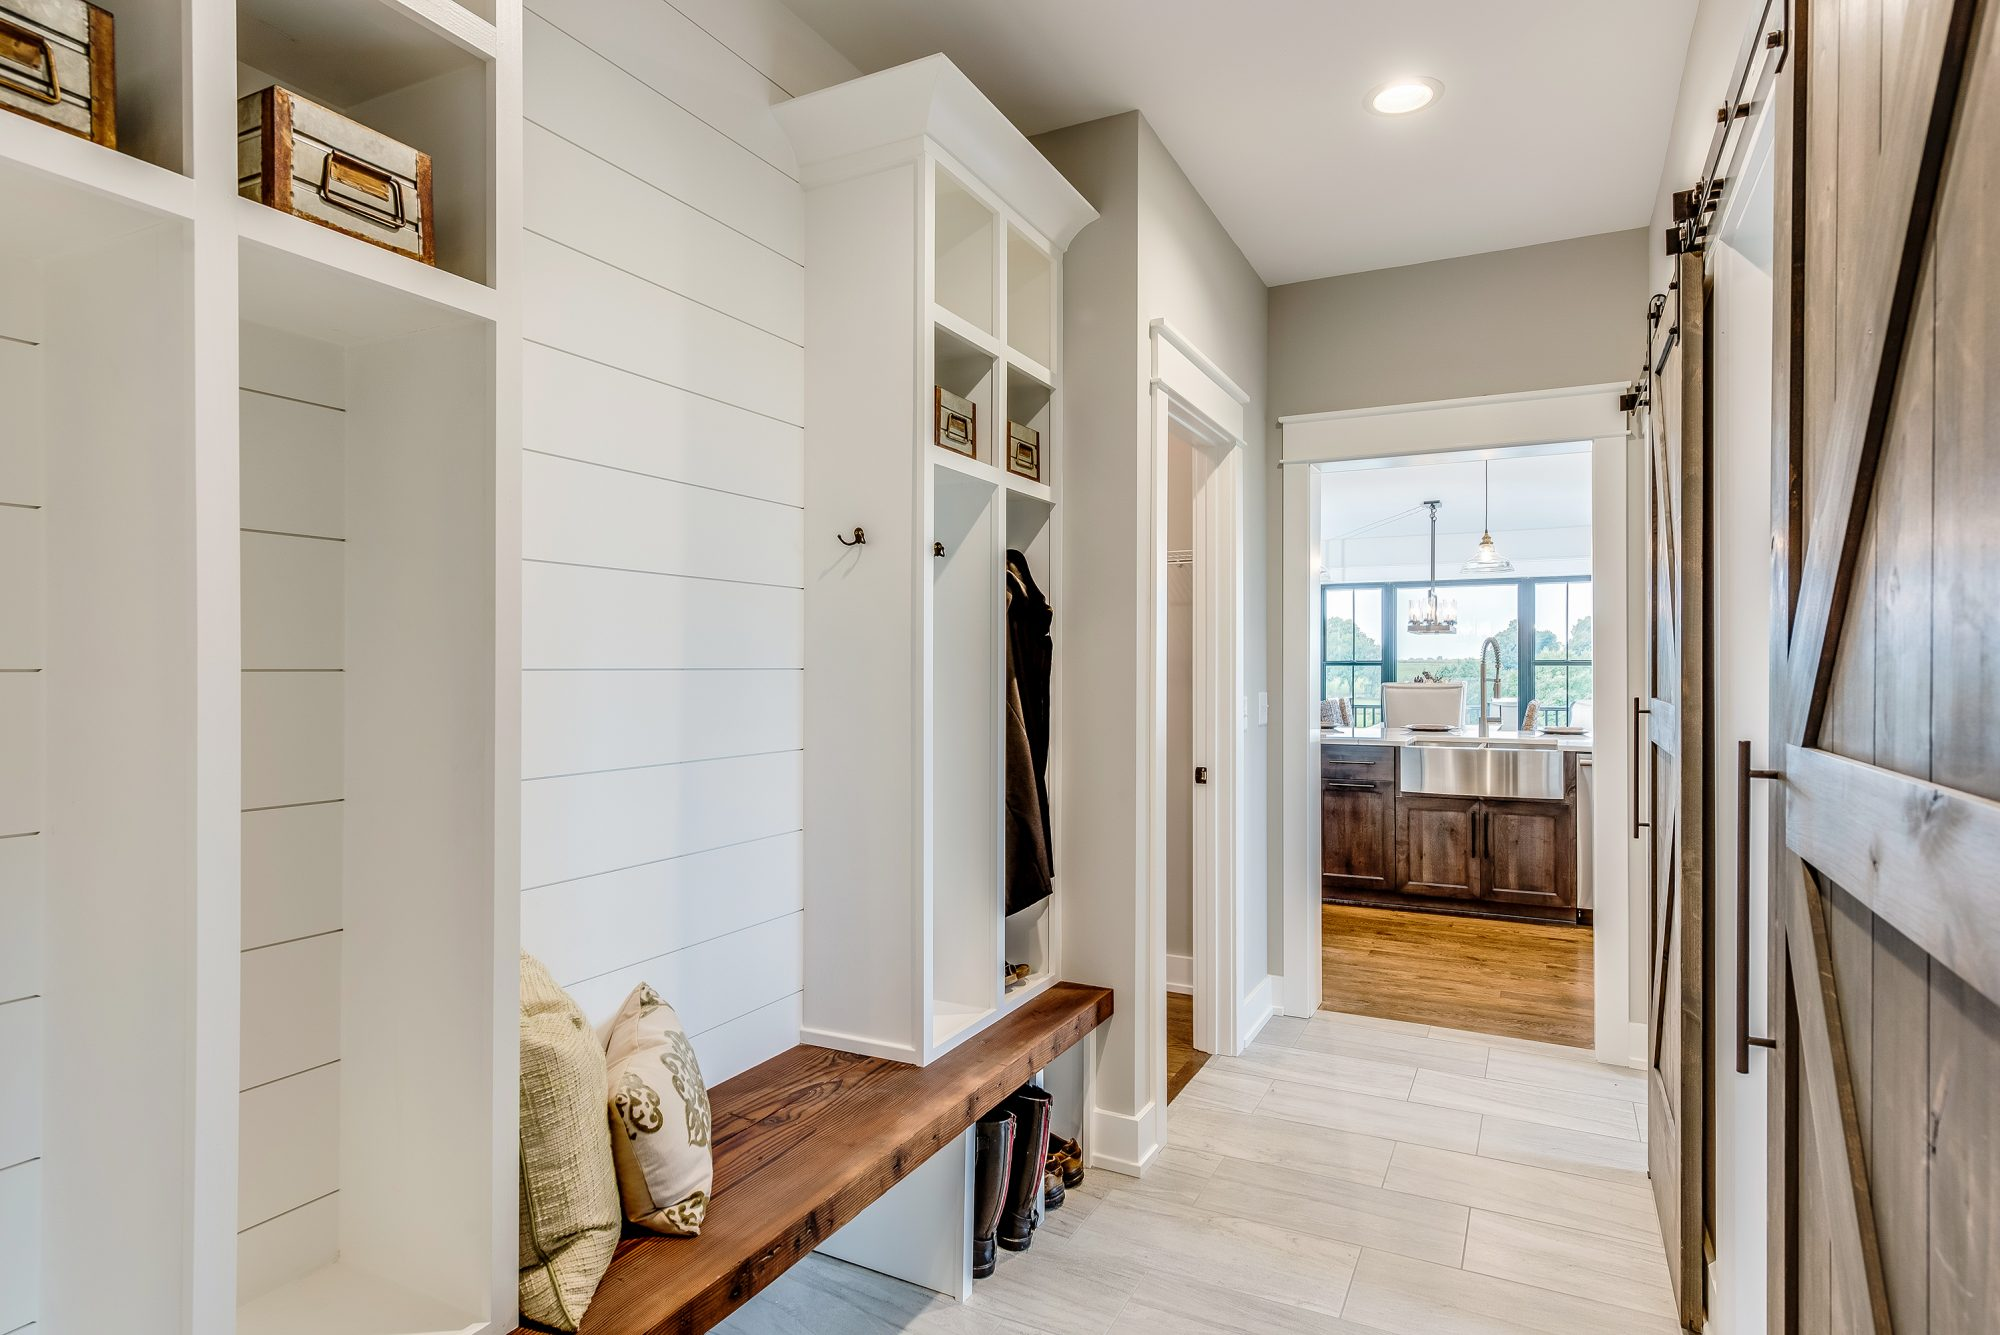 Entryway with Storage Cubbies and Sink